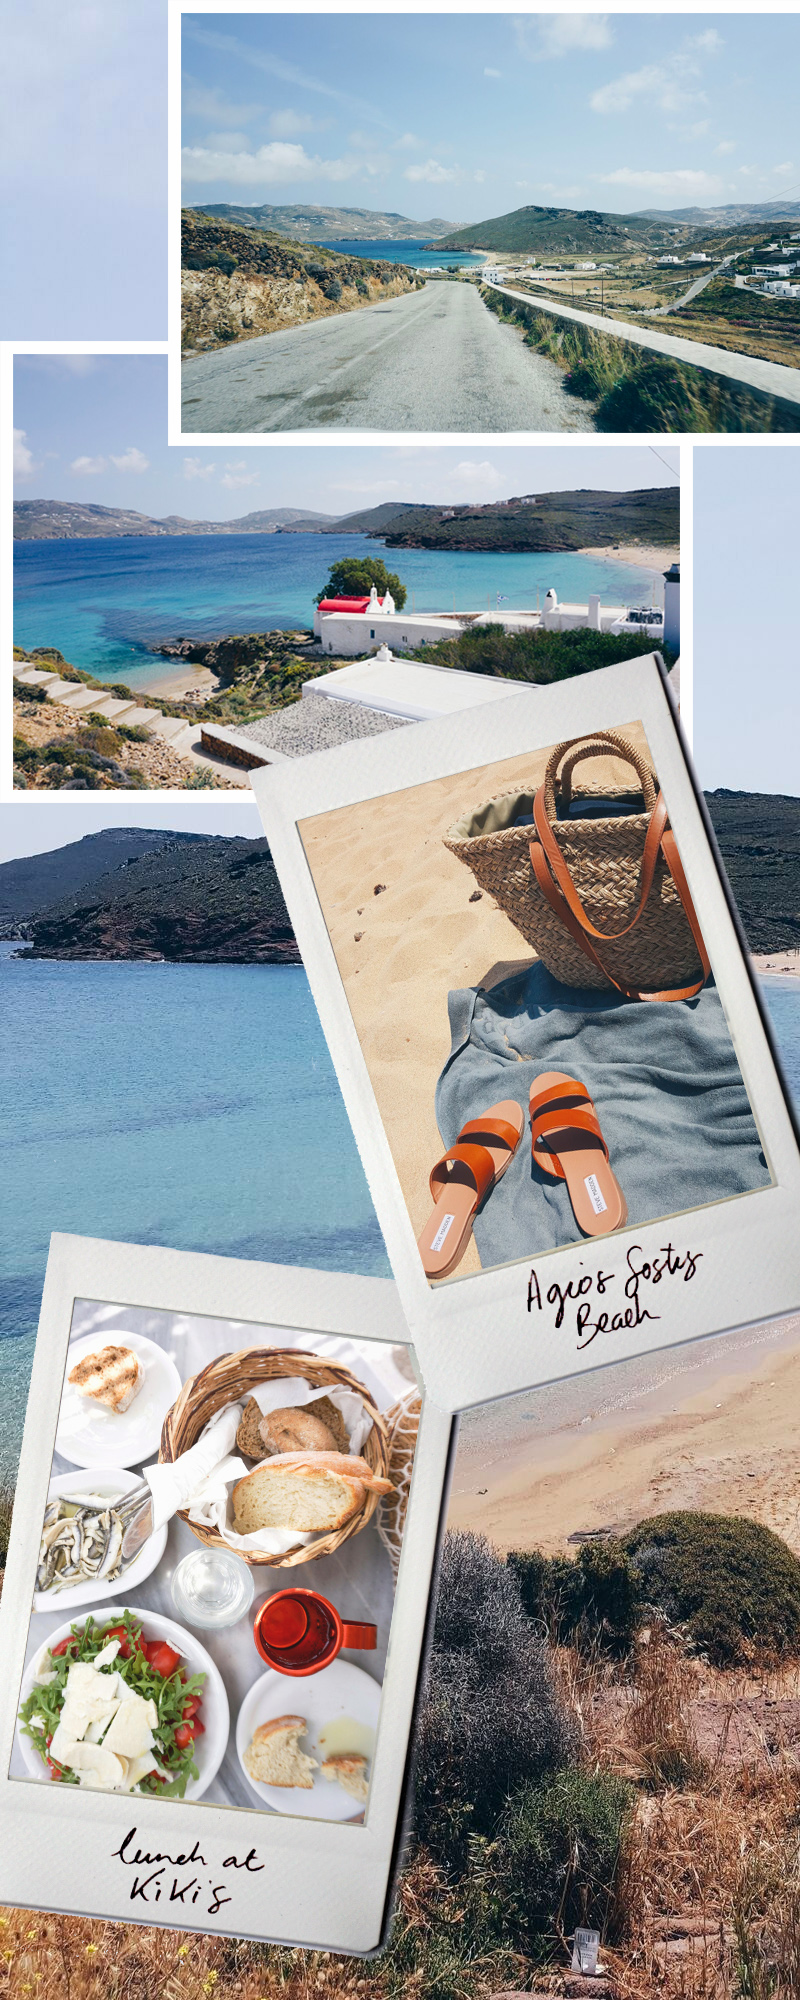 Our road trip featuring the best beach and the most delicious lunch